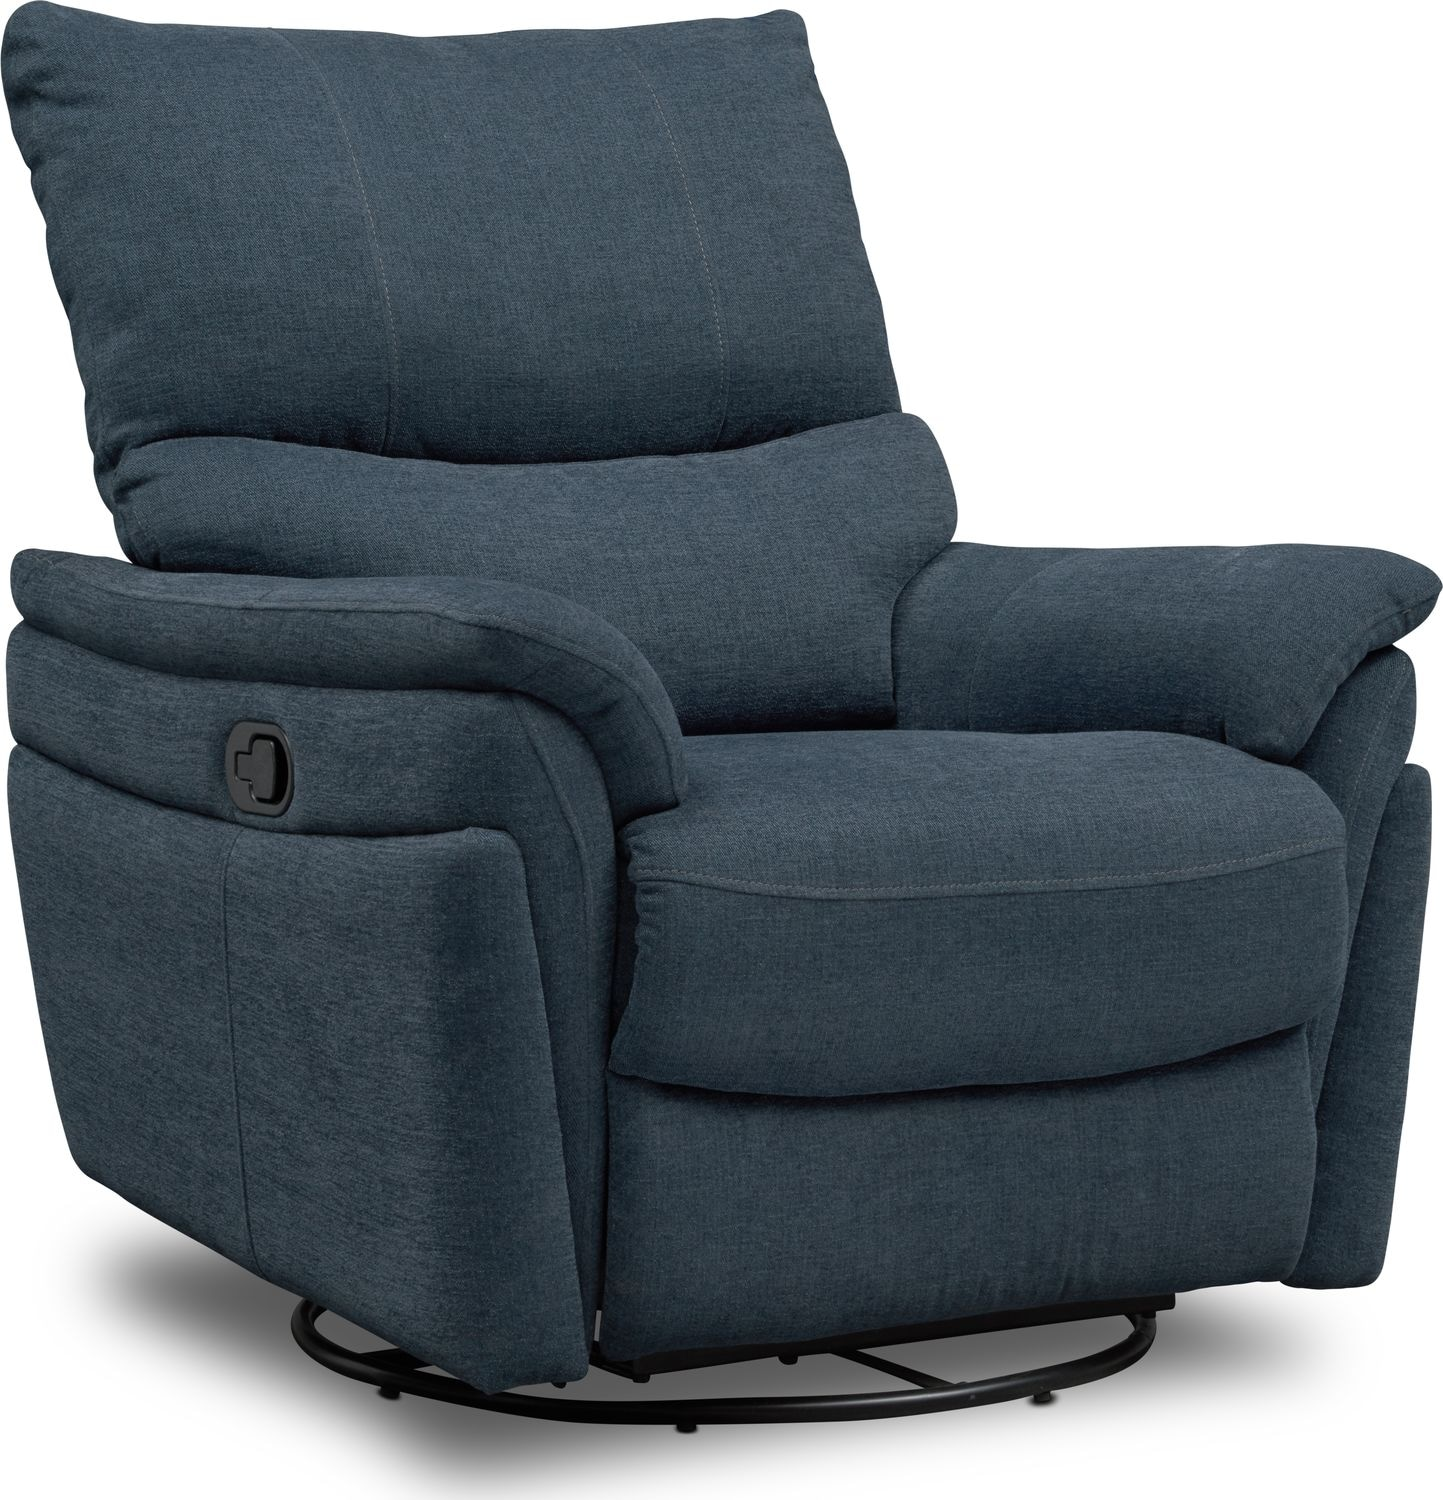 Living Room Furniture - Maddox Manual Swivel Chair